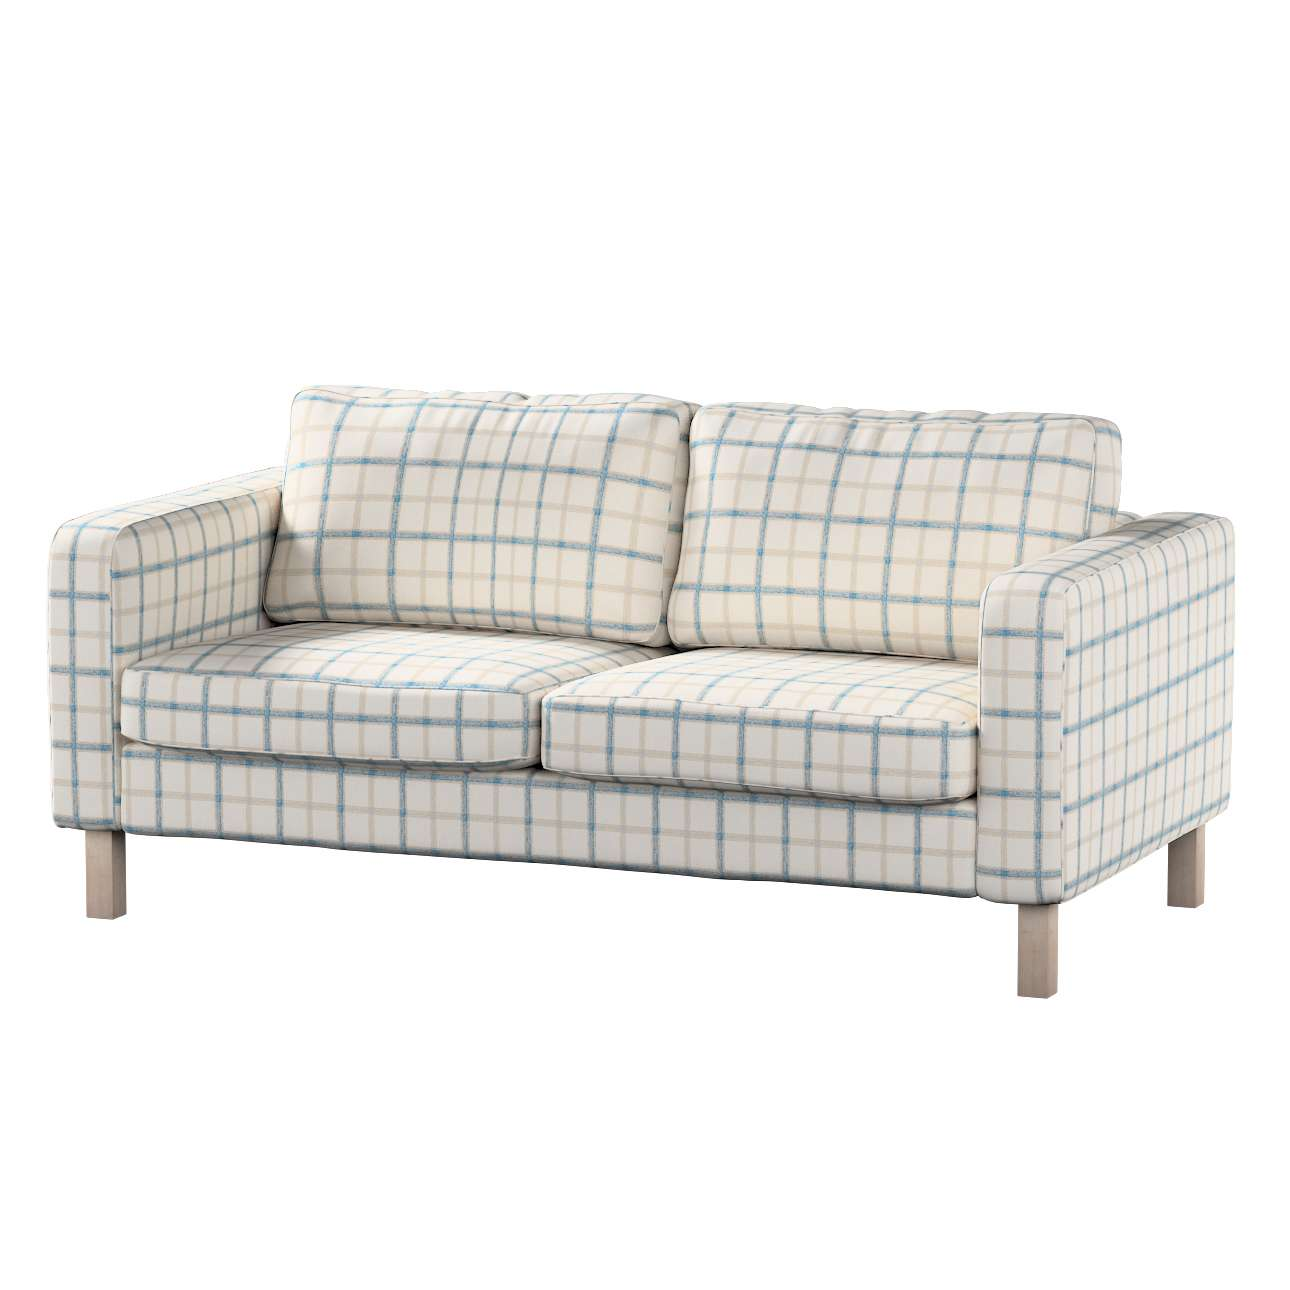 Karlstad 2-seater sofa cover in collection Avinon, fabric: 131-66